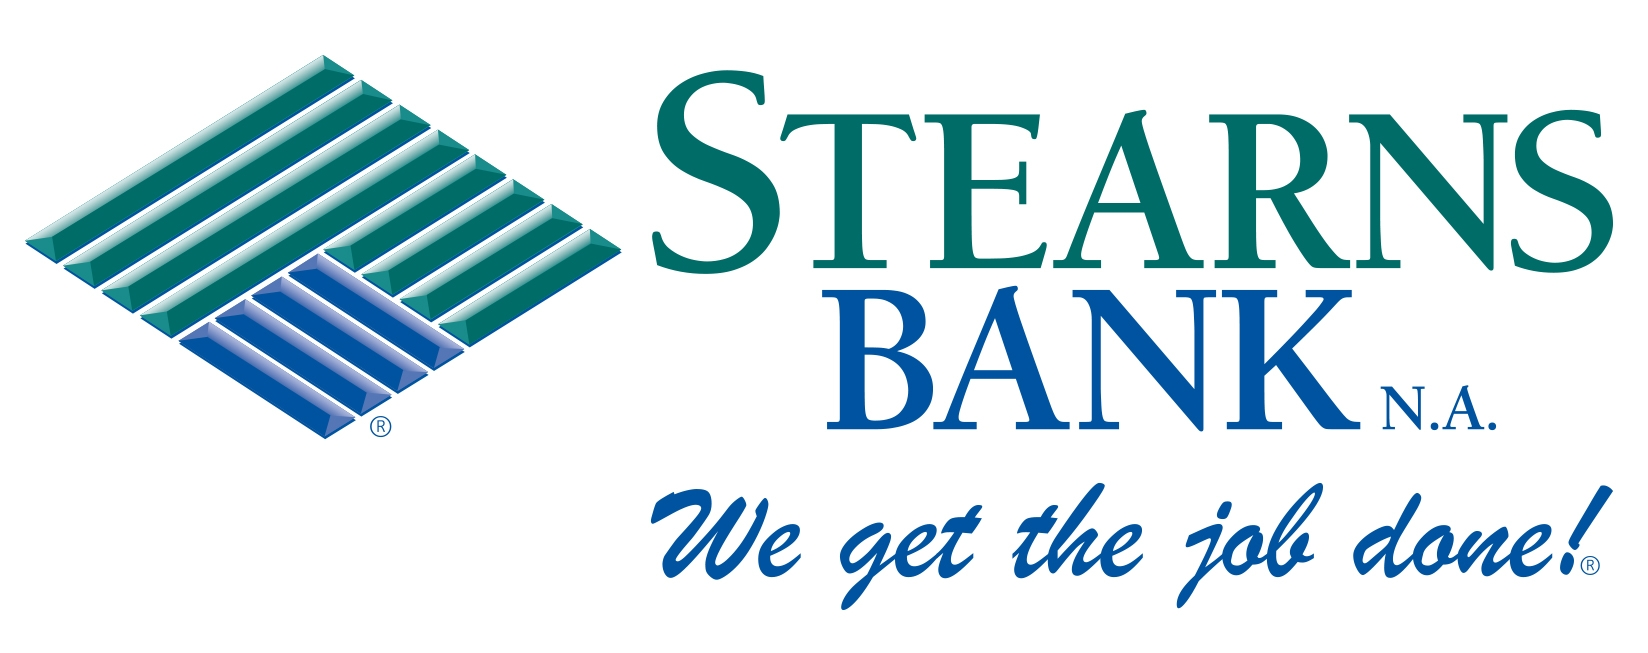 StearnsBank-white